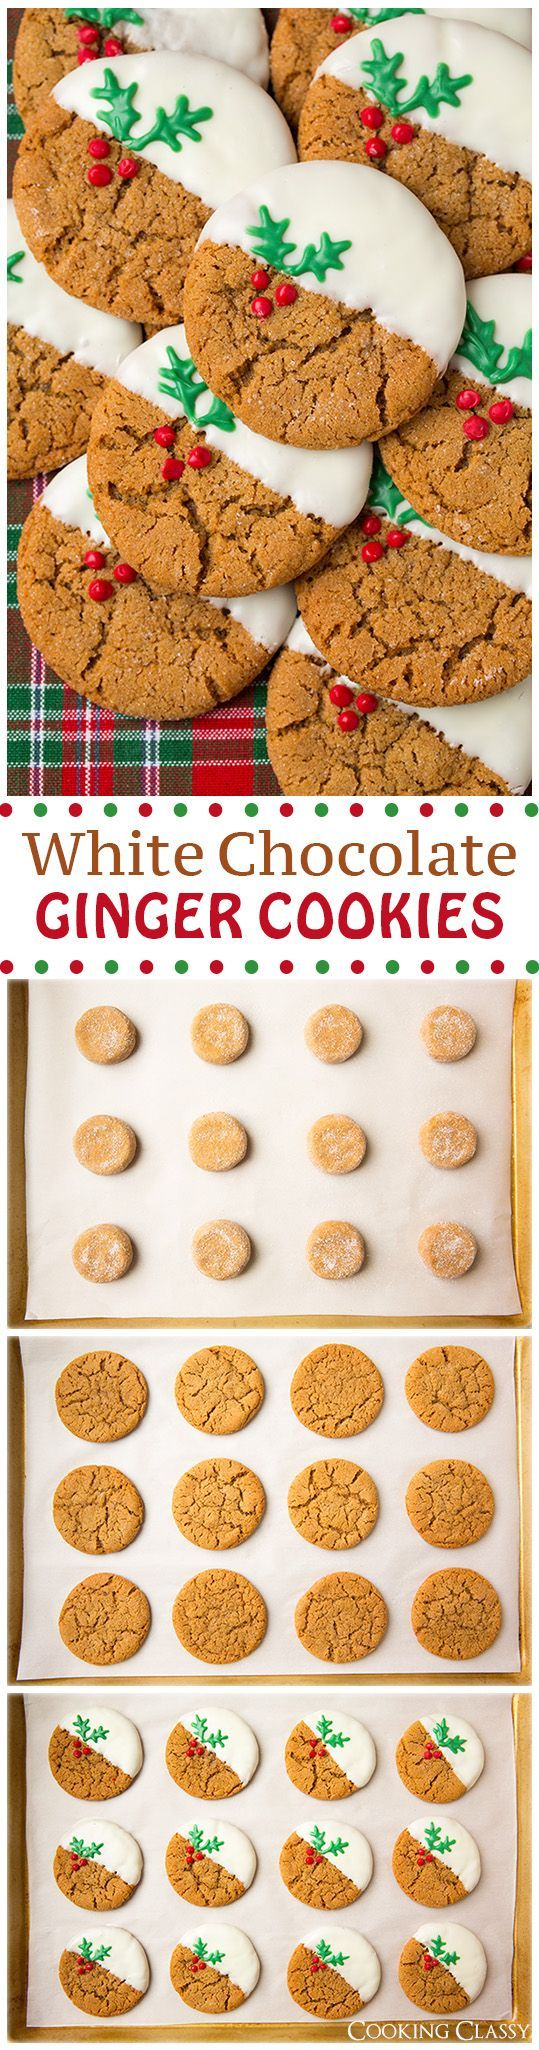 White Chocolate Dipped Ginger Cookies (soft and chewy) - these cookies are SO GOOD!! So much gingery flavor and the white chocolate is the perfect compliment. (White Chocolate Butter)